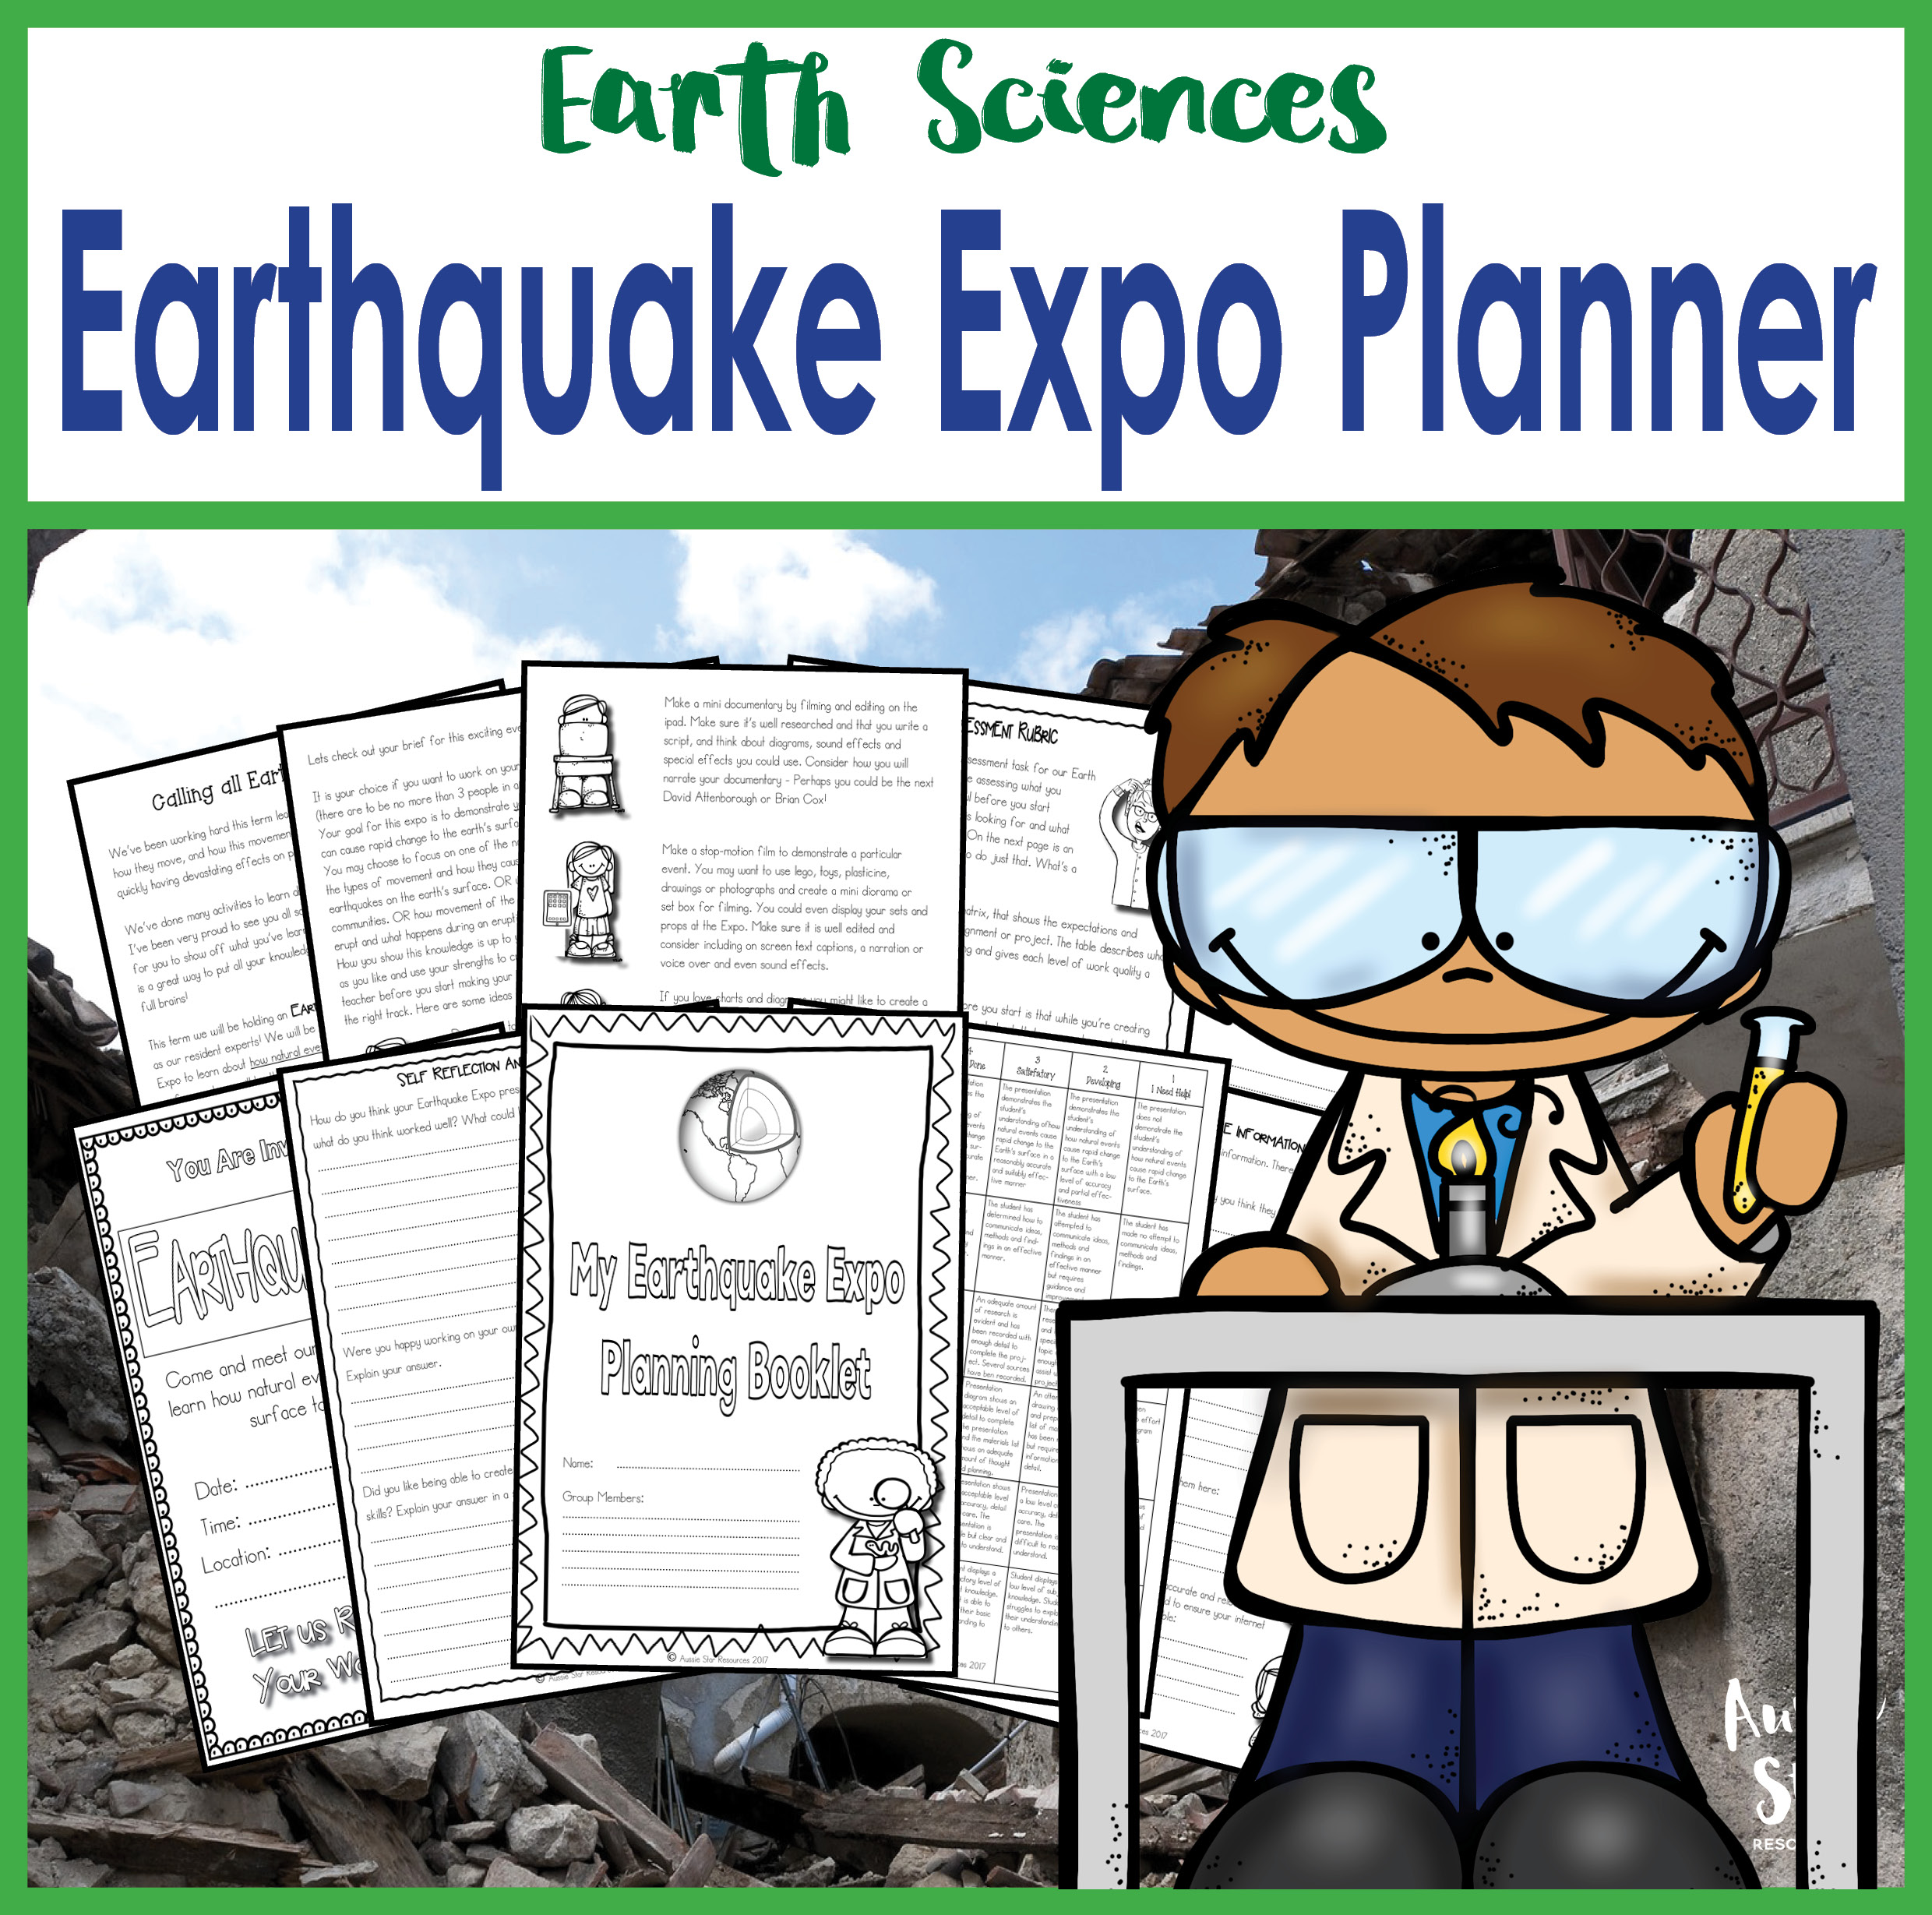 Earthquake Expo project planner cover